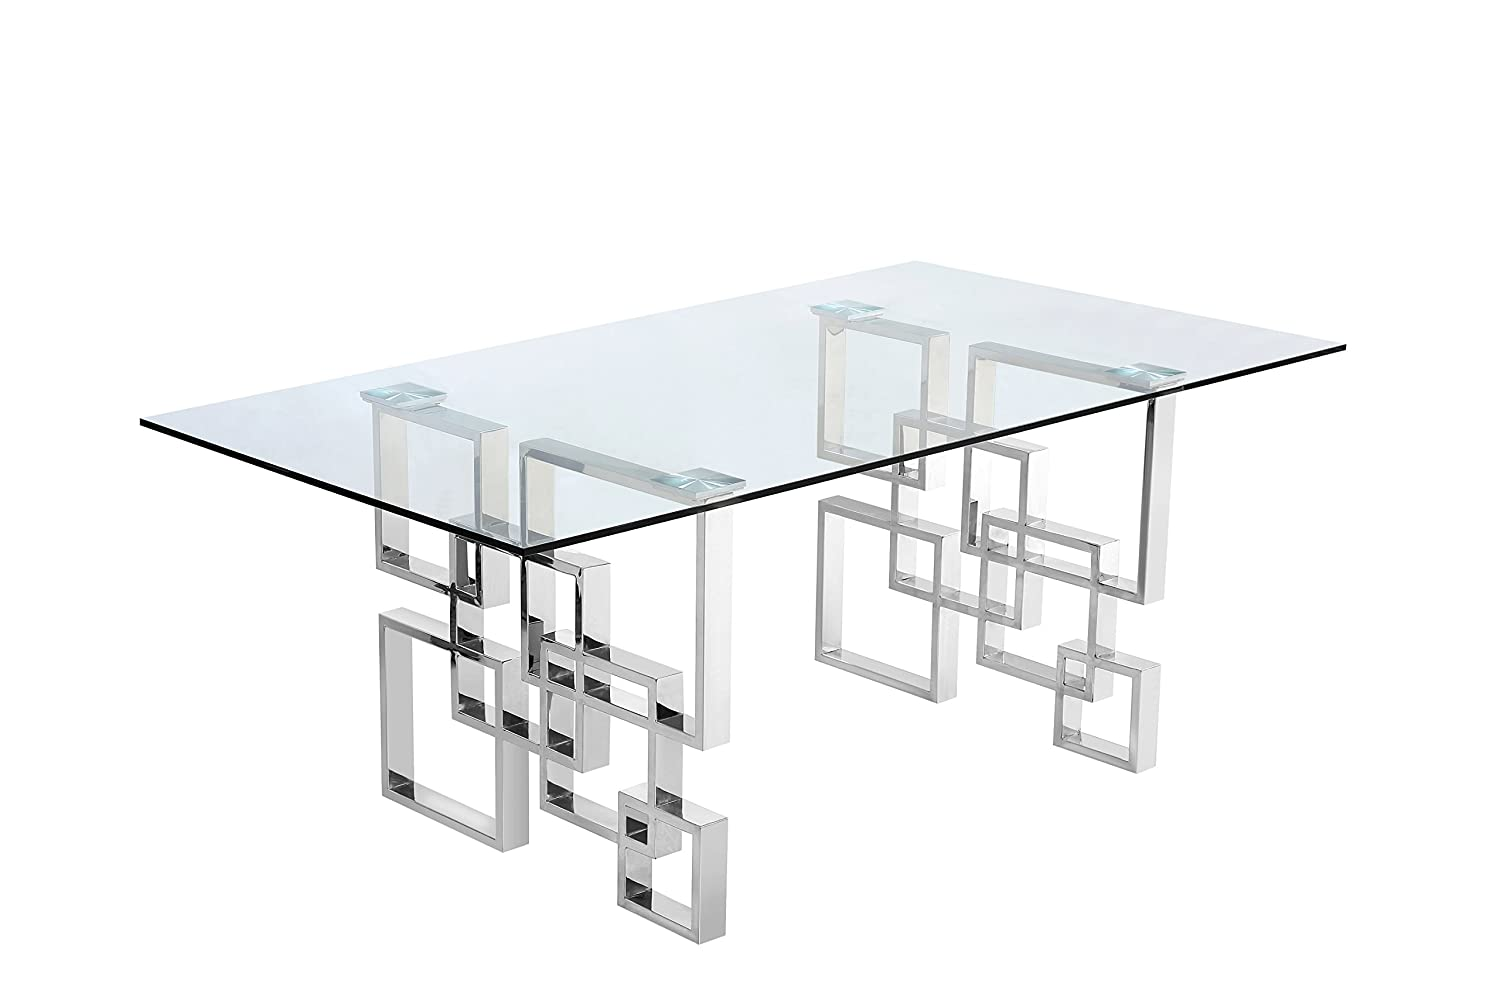 """Meridian Furniture 731 T Alexis Contemporary Style 78"""" Rectangular Dining Room Table With Rich Chrome Stainless Steel Geometric Base And Glass Top, Chrome by Meridian Furniture"""